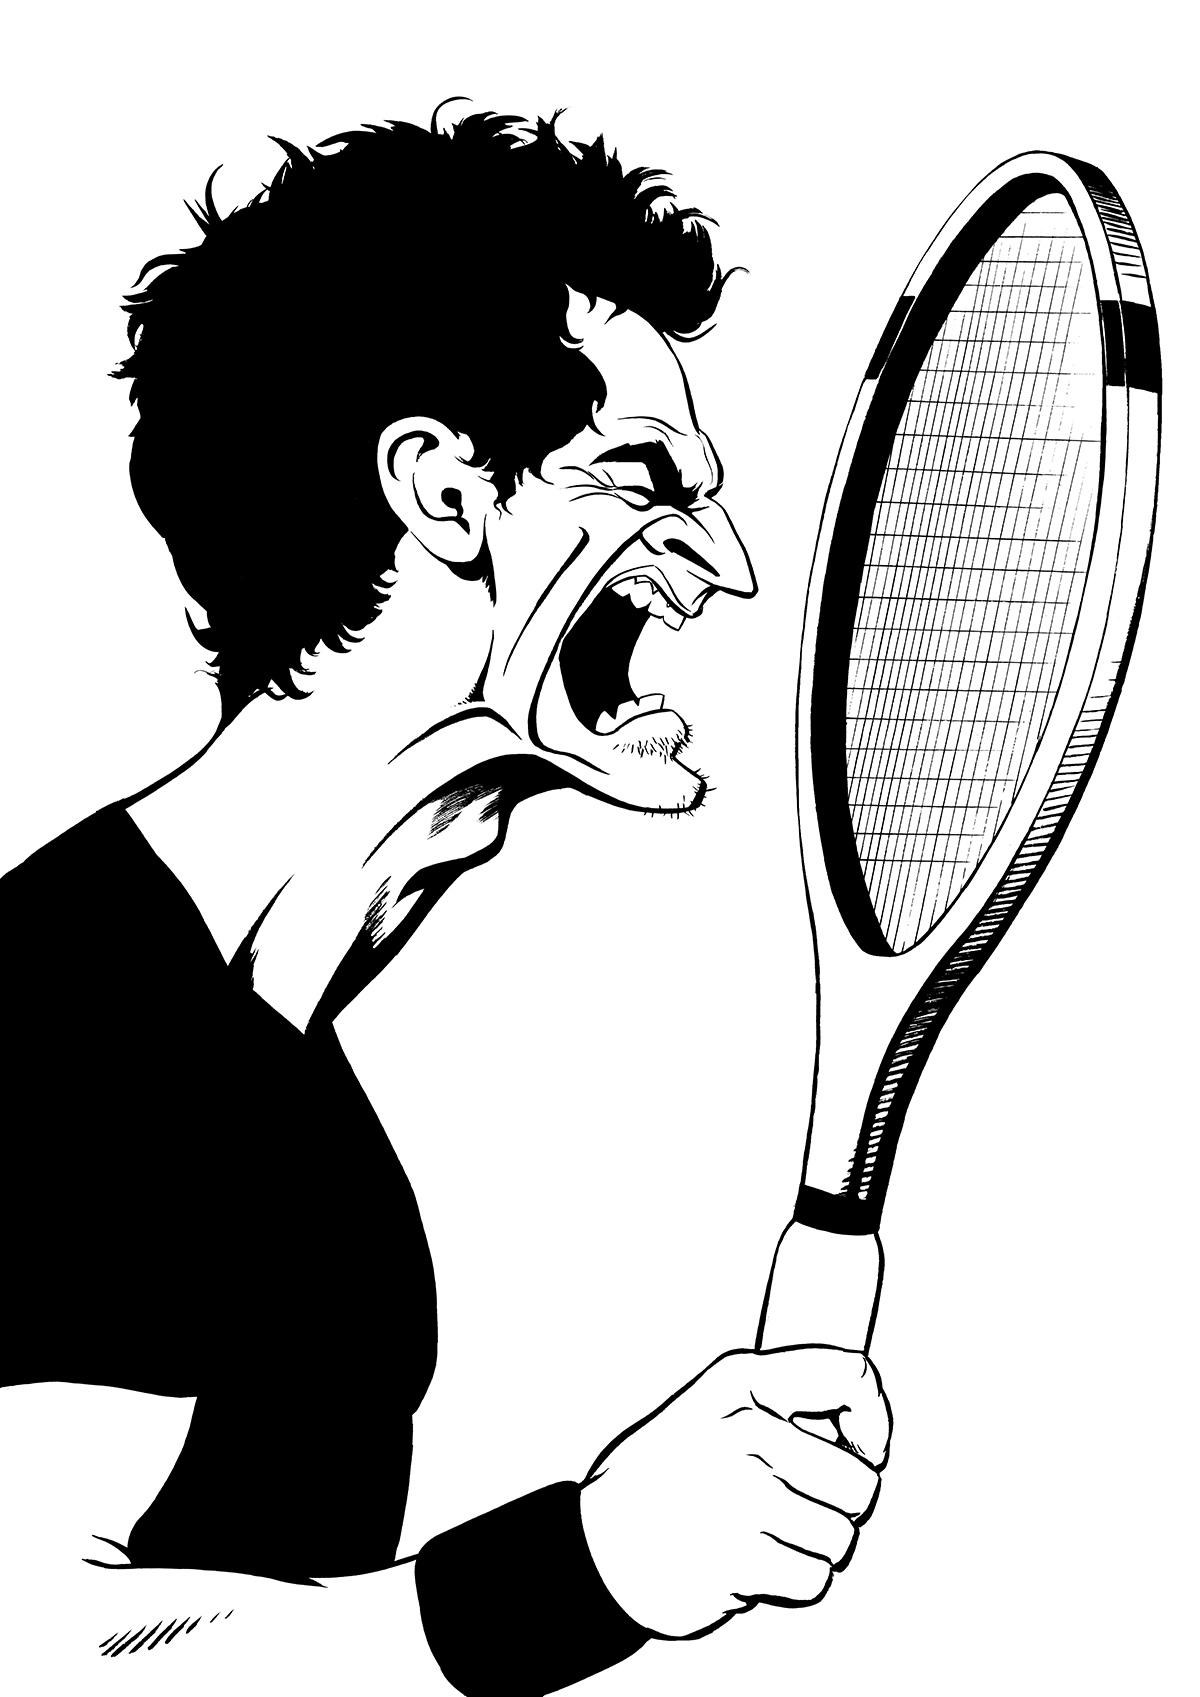 Andy Murray caricature, British tennis player, Wimbledon champion. By Ken Lowe Illustration. Limited edition prints available, size A2 or A3, signed and numbered by Ken Lowe.